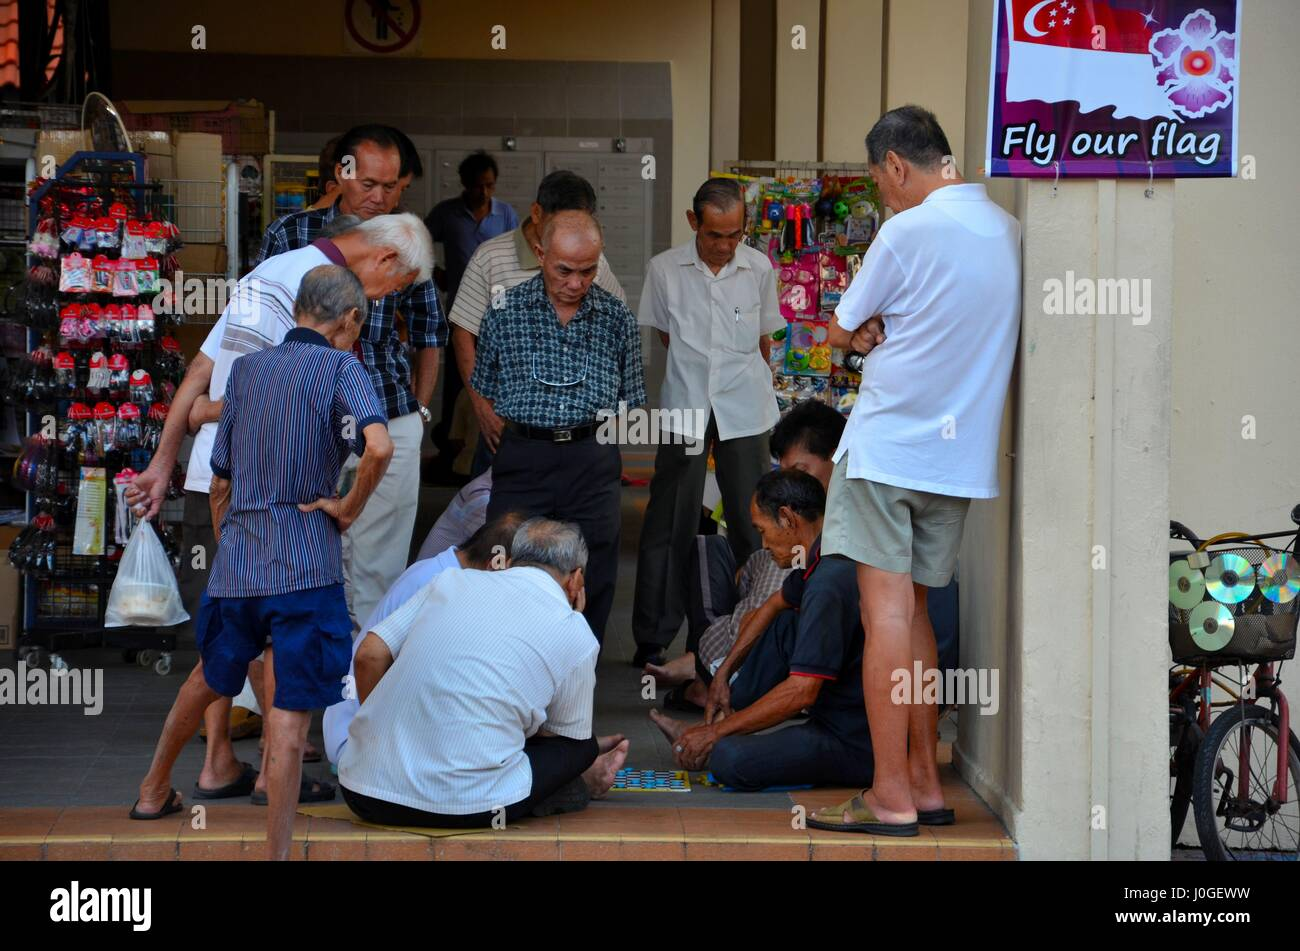 Group of Chinese men watch a game of checkers and entertain themselves in Singapore Toa Payoh neighborhood - Stock Image